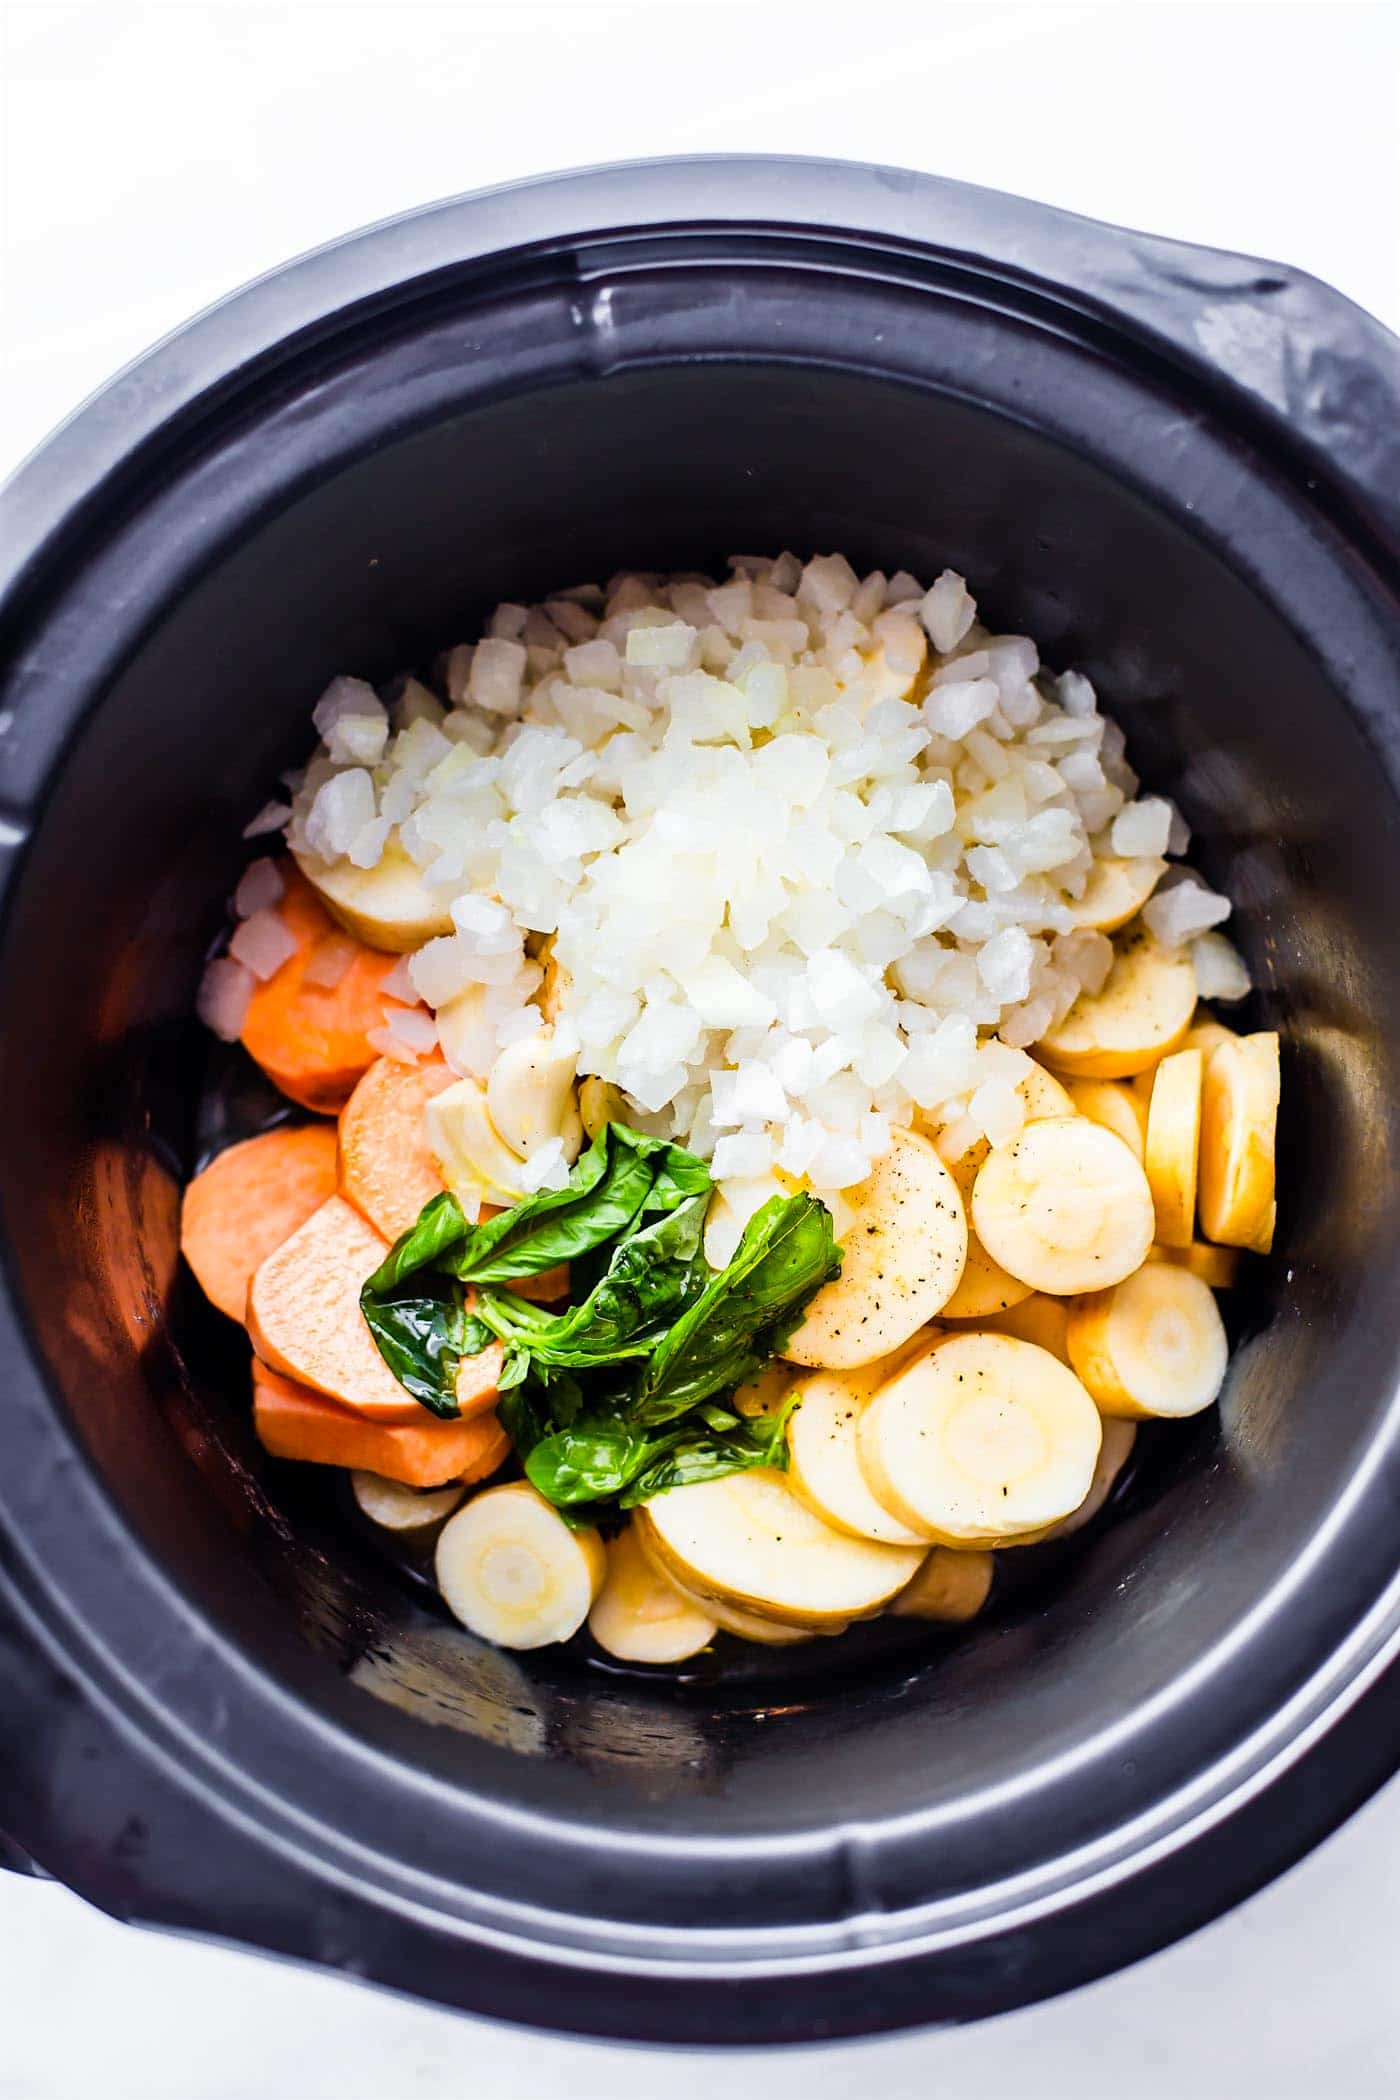 onions, potatoes, parsnips, and carrots in a slow cooker